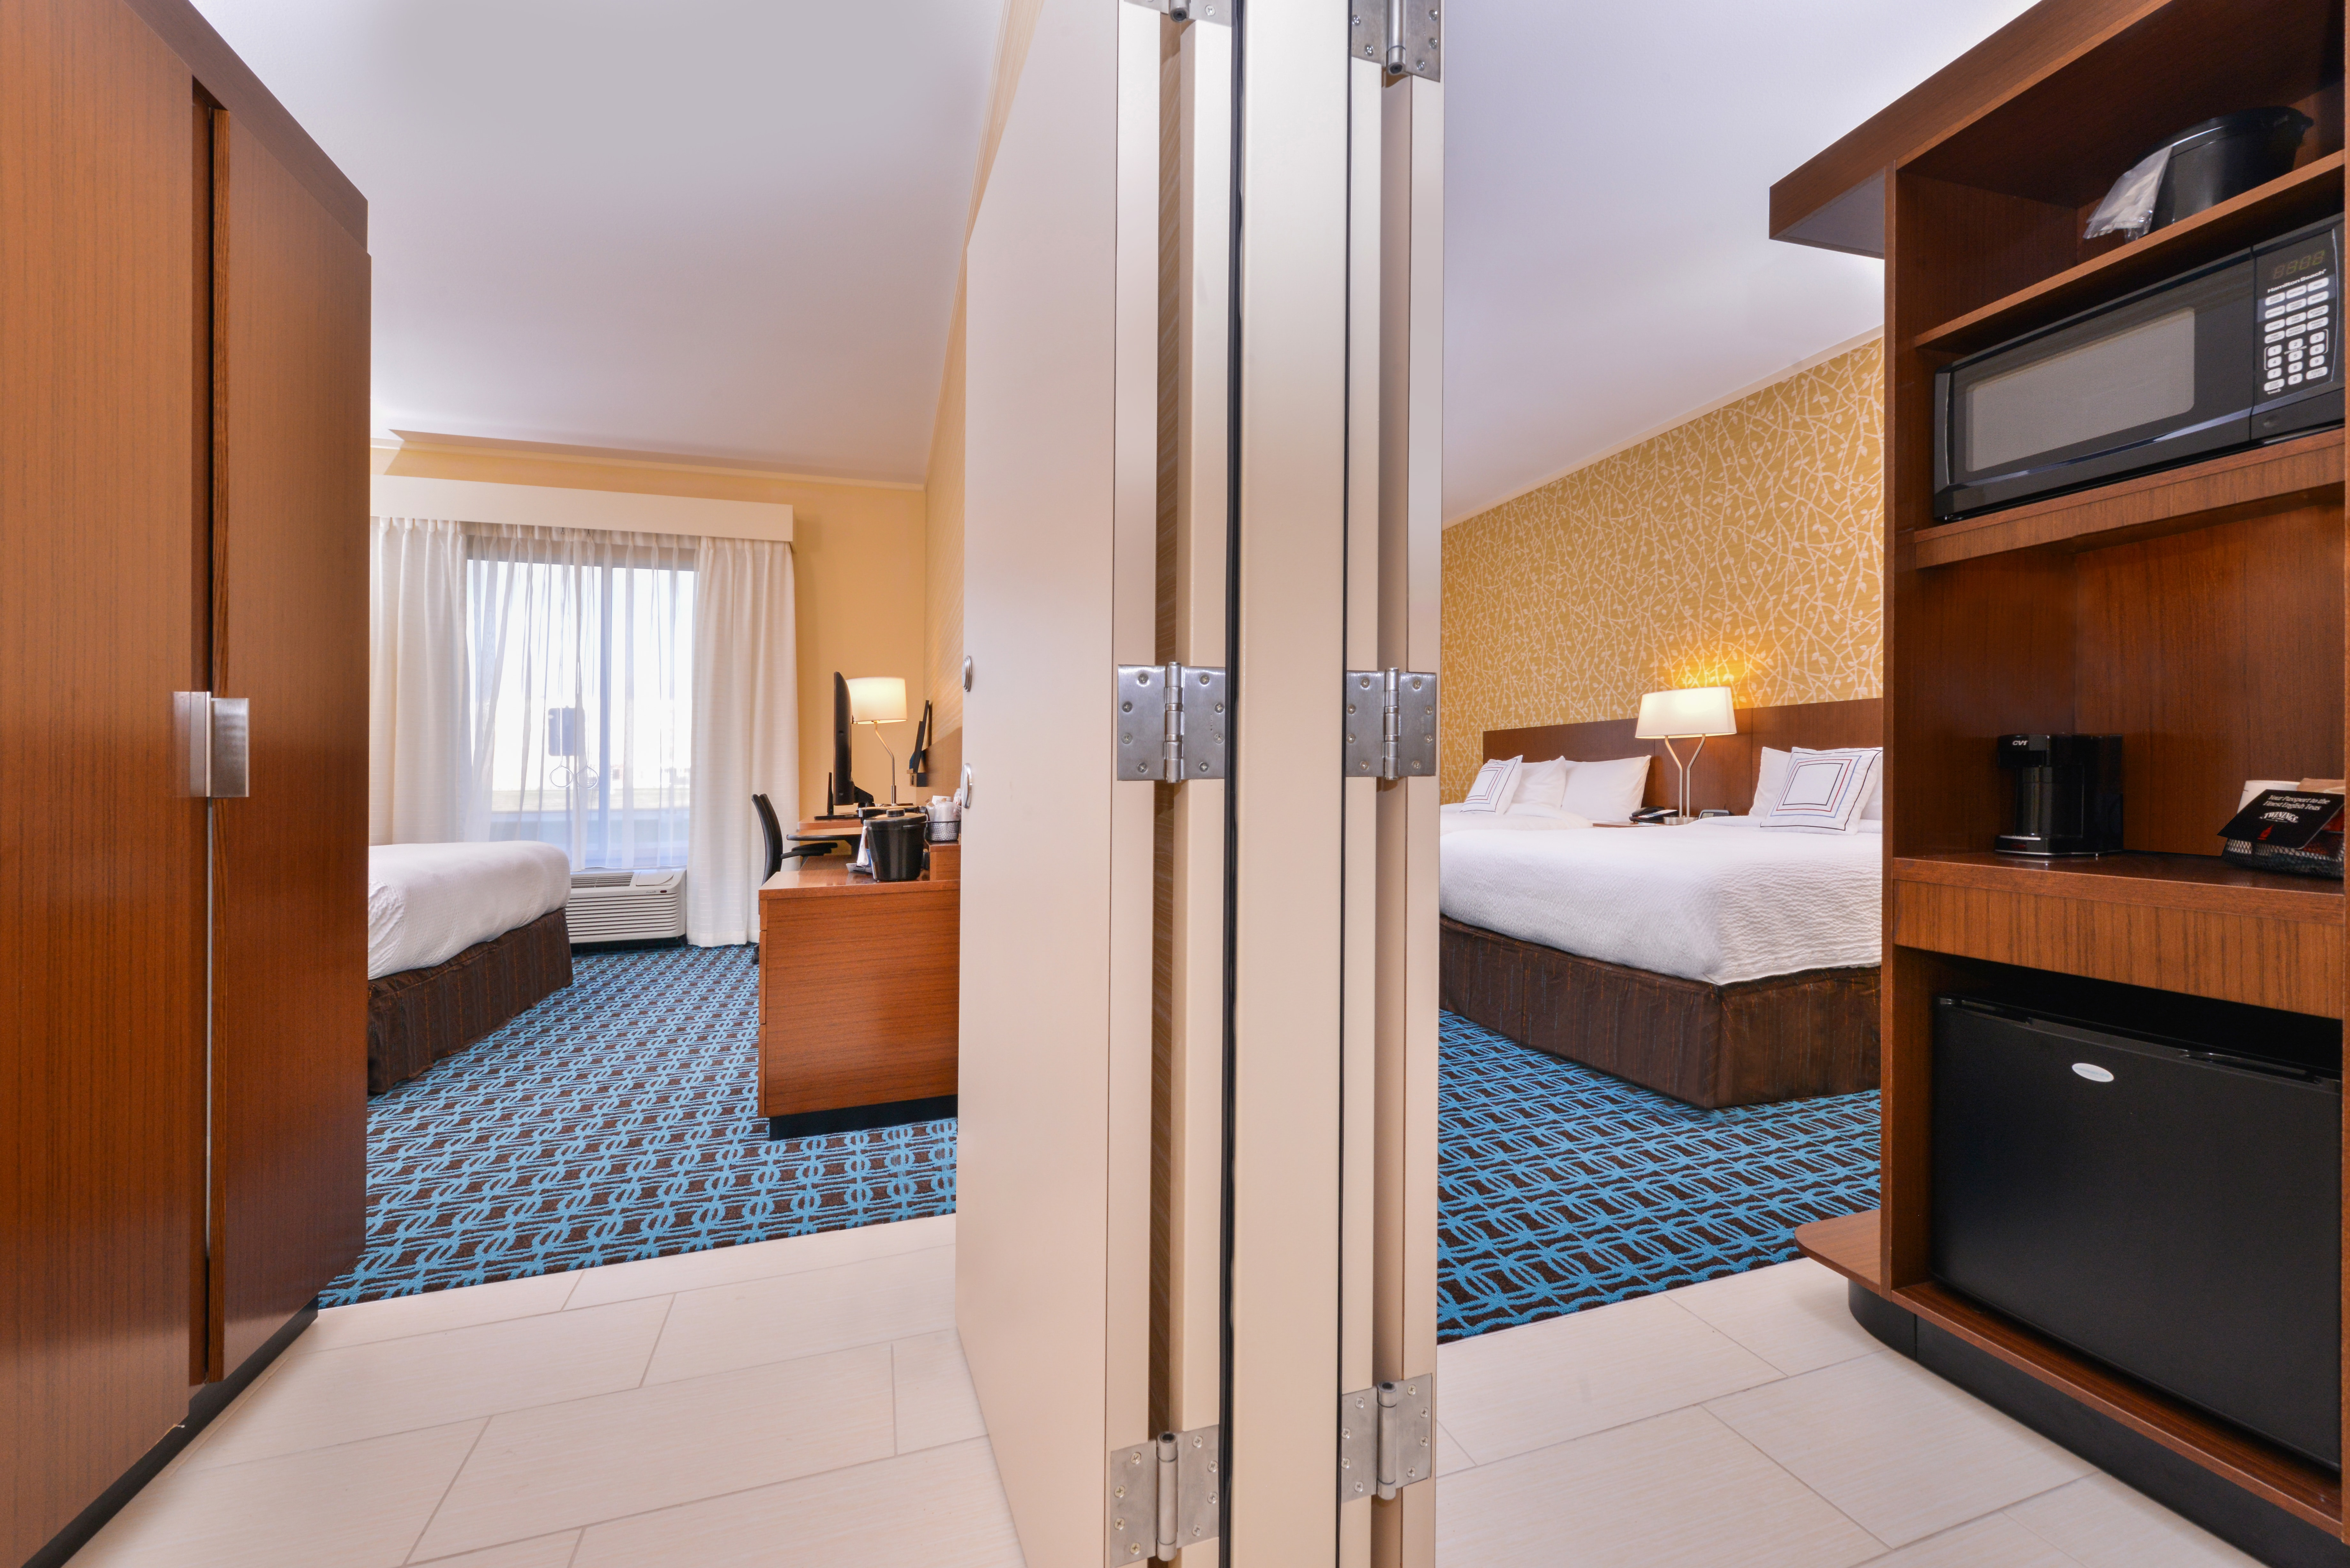 https://www.hotelsbyday.com/_data/default-hotel_image/3/16079/fis-cidco-connecting-zcipi.jpg